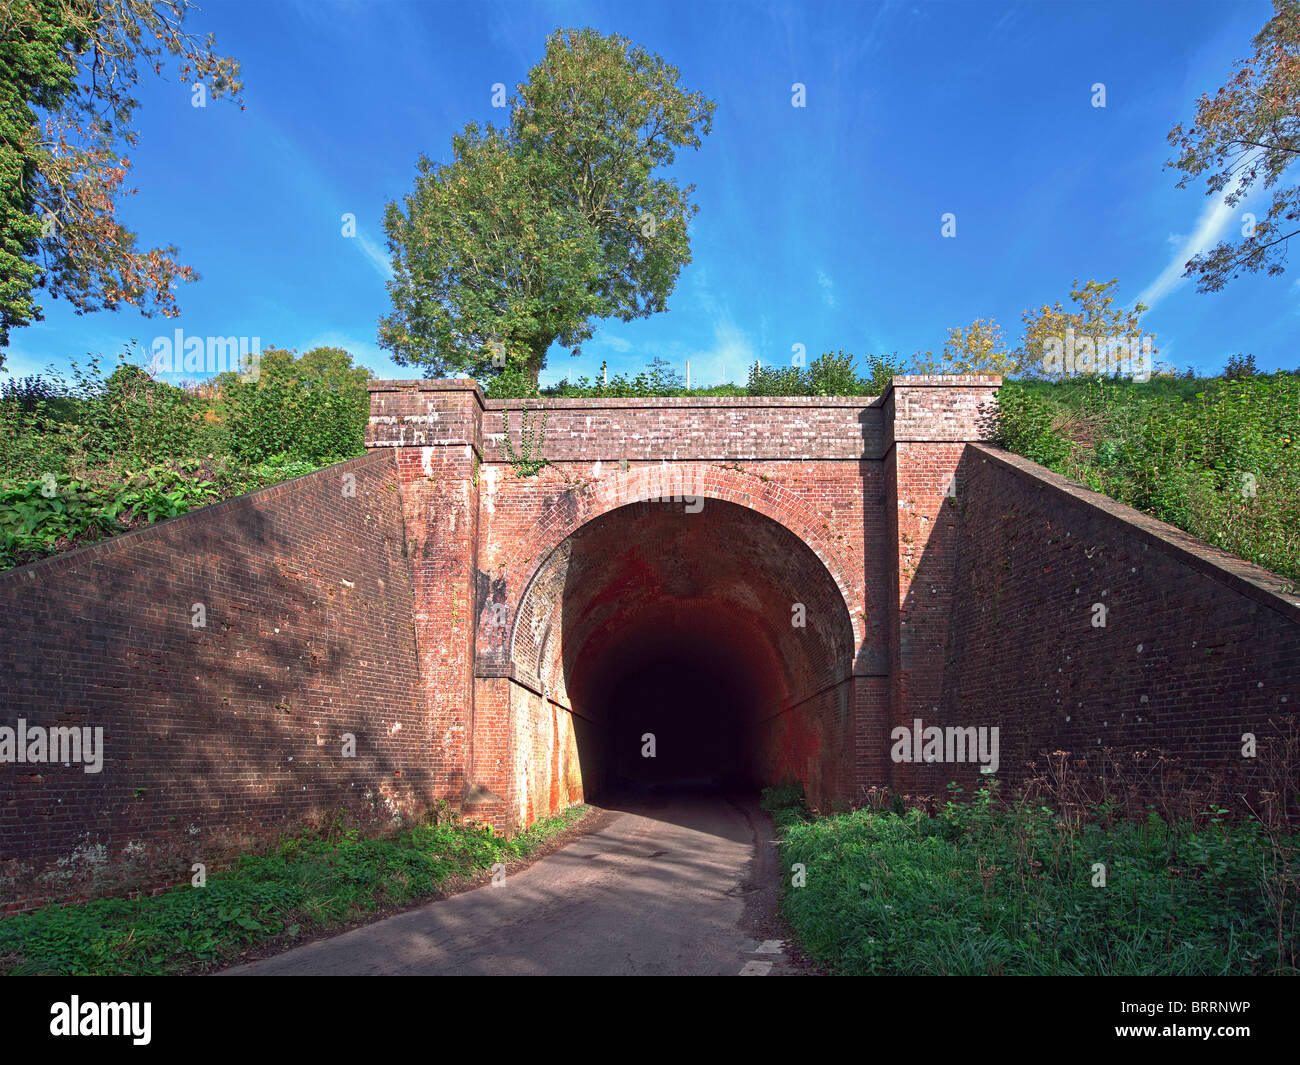 Red Brick Tunnel on a rail embankment with road under with single tree and blue sky Stock Photo